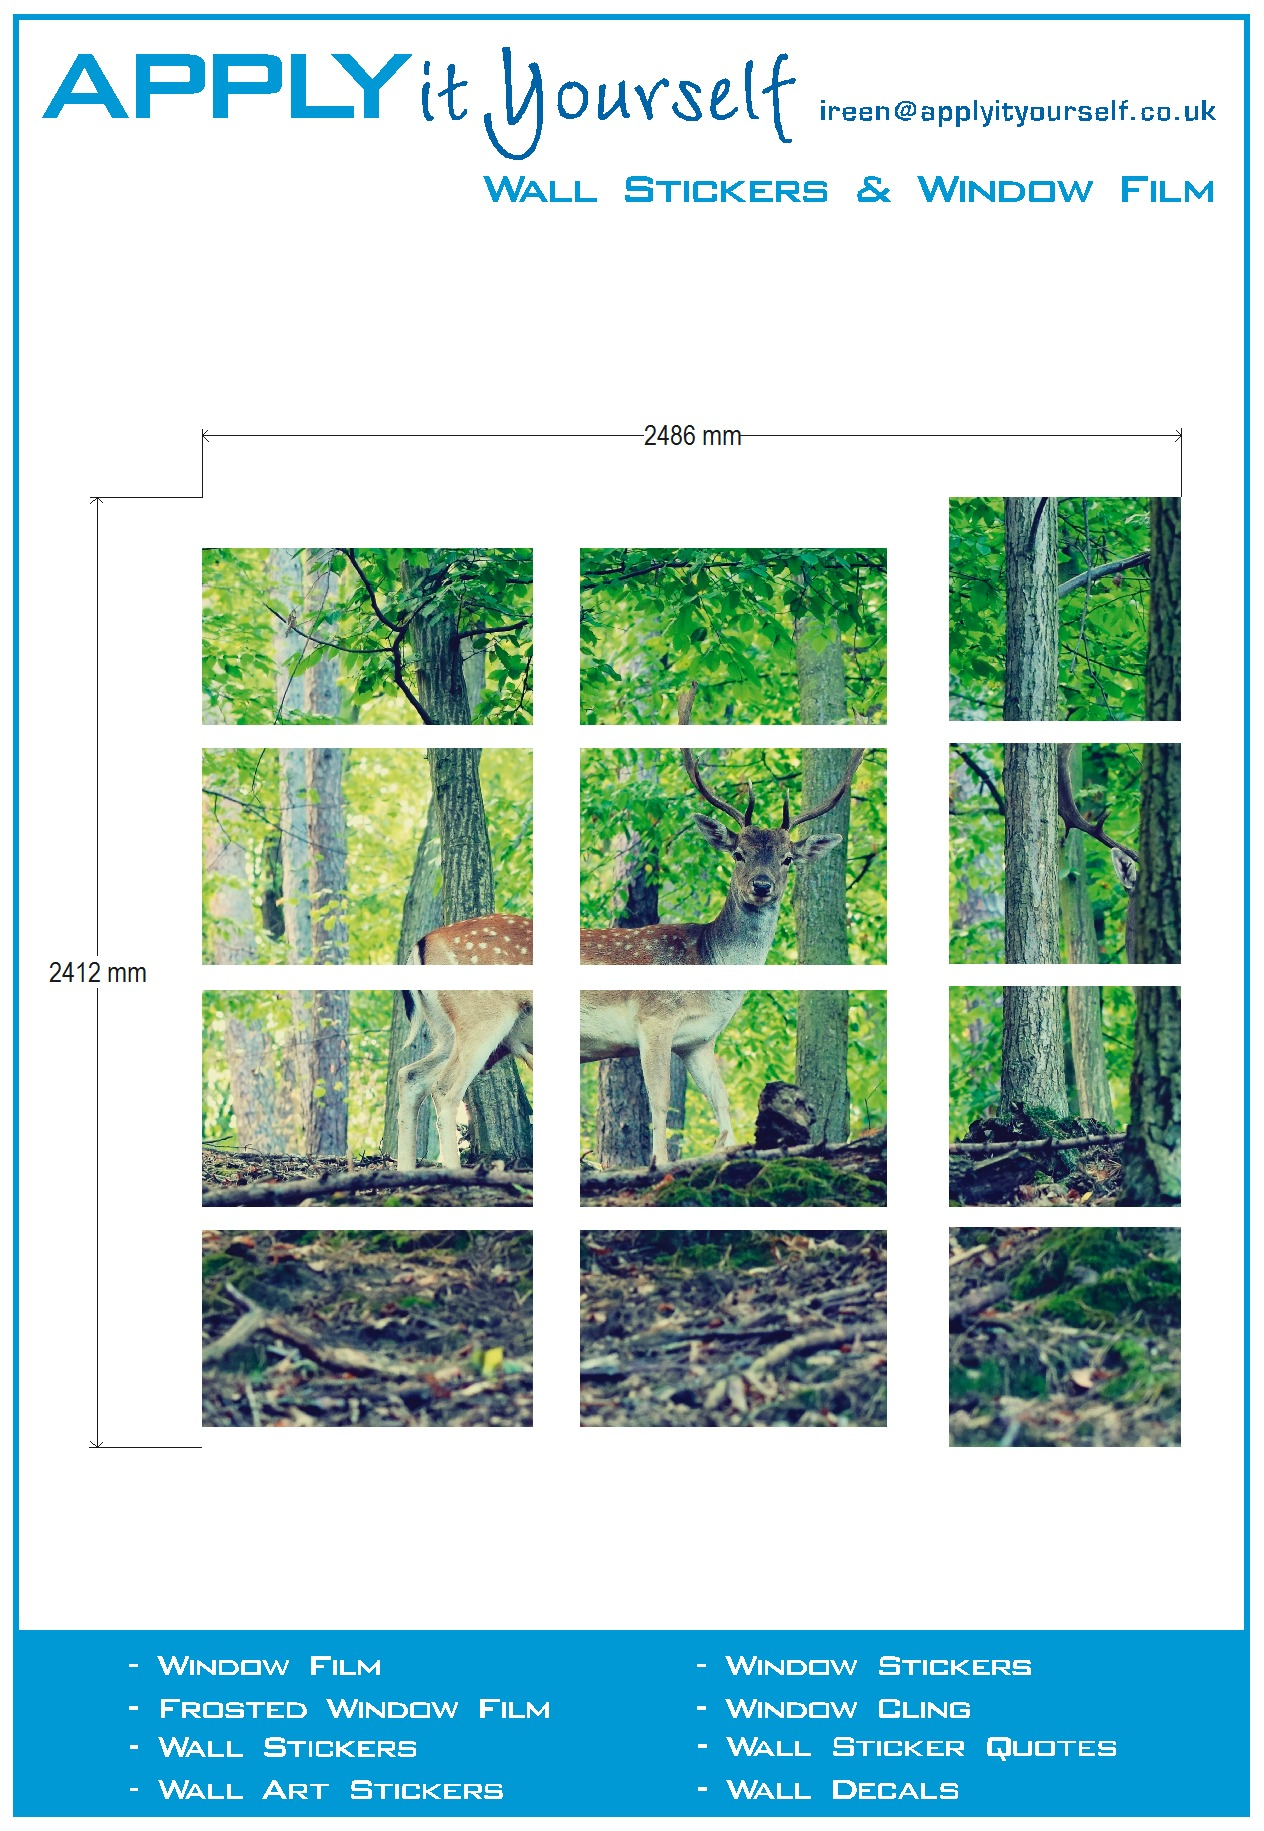 Frosted window film (2) multiple windows, print, nature, forest, deer